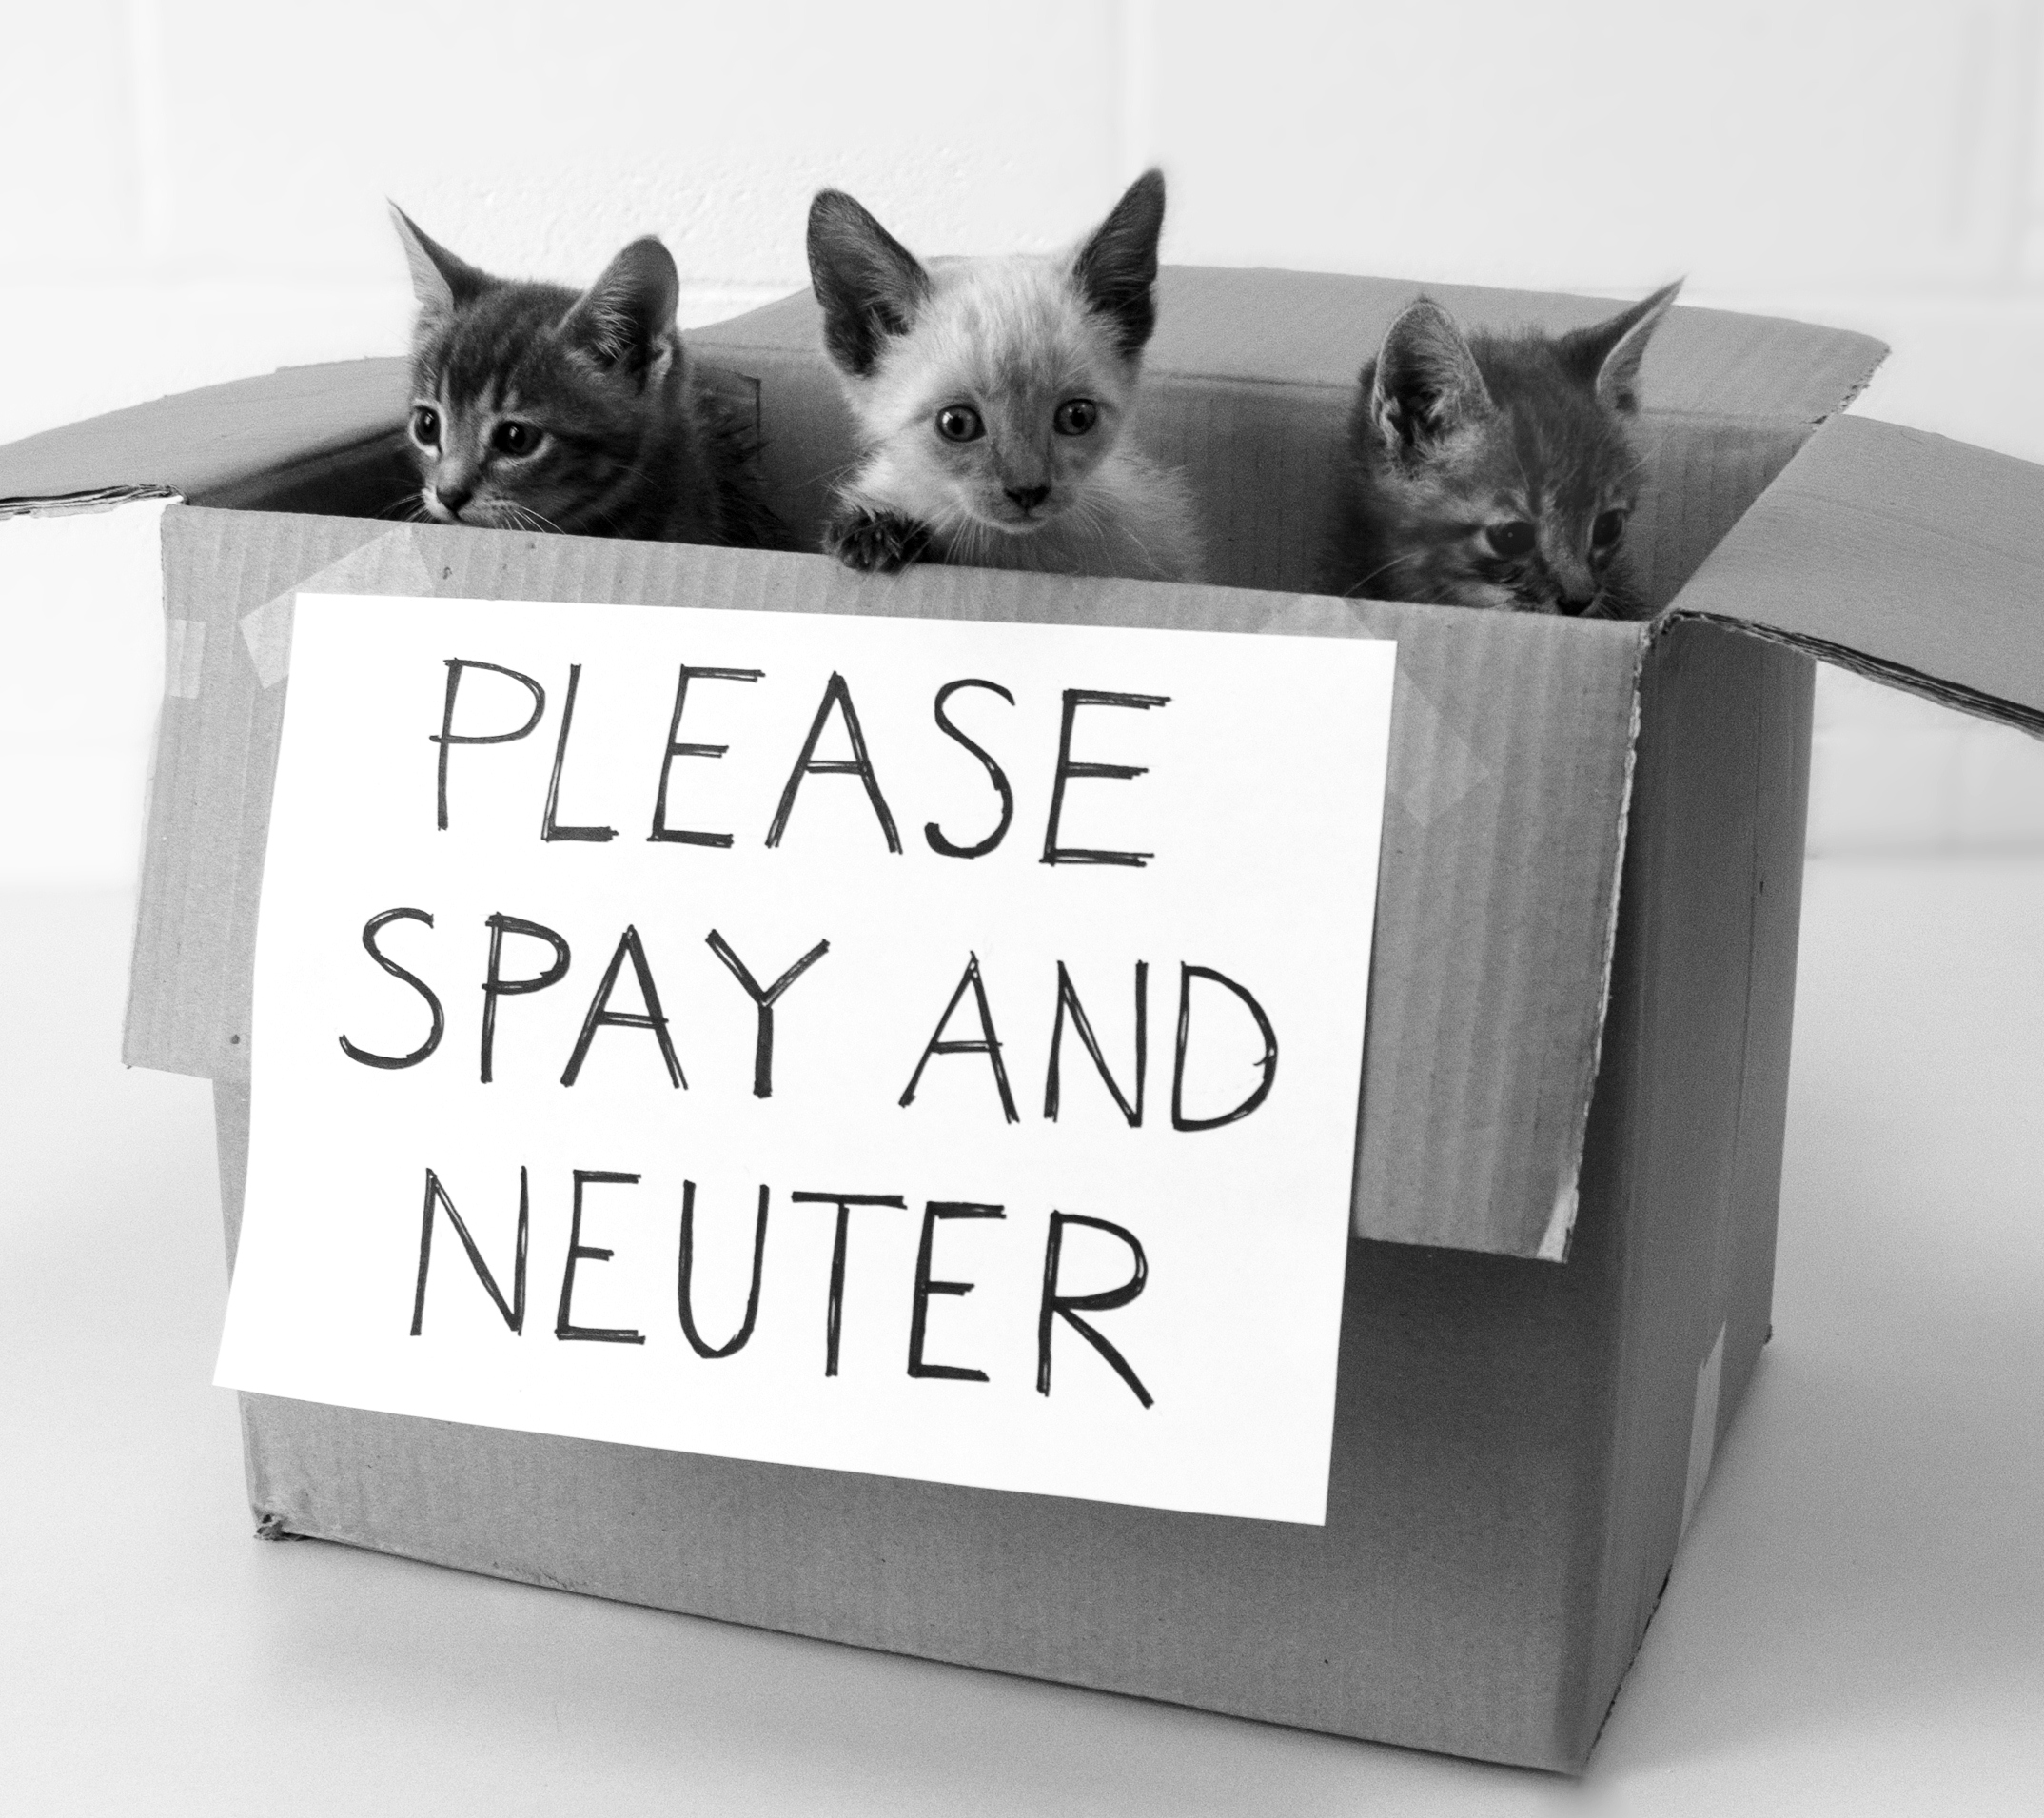 spay neutering your pets That's because we've been conditioned to believe that a responsible pet owner means spaying and neutering your dog i was taught to believe the same thing .